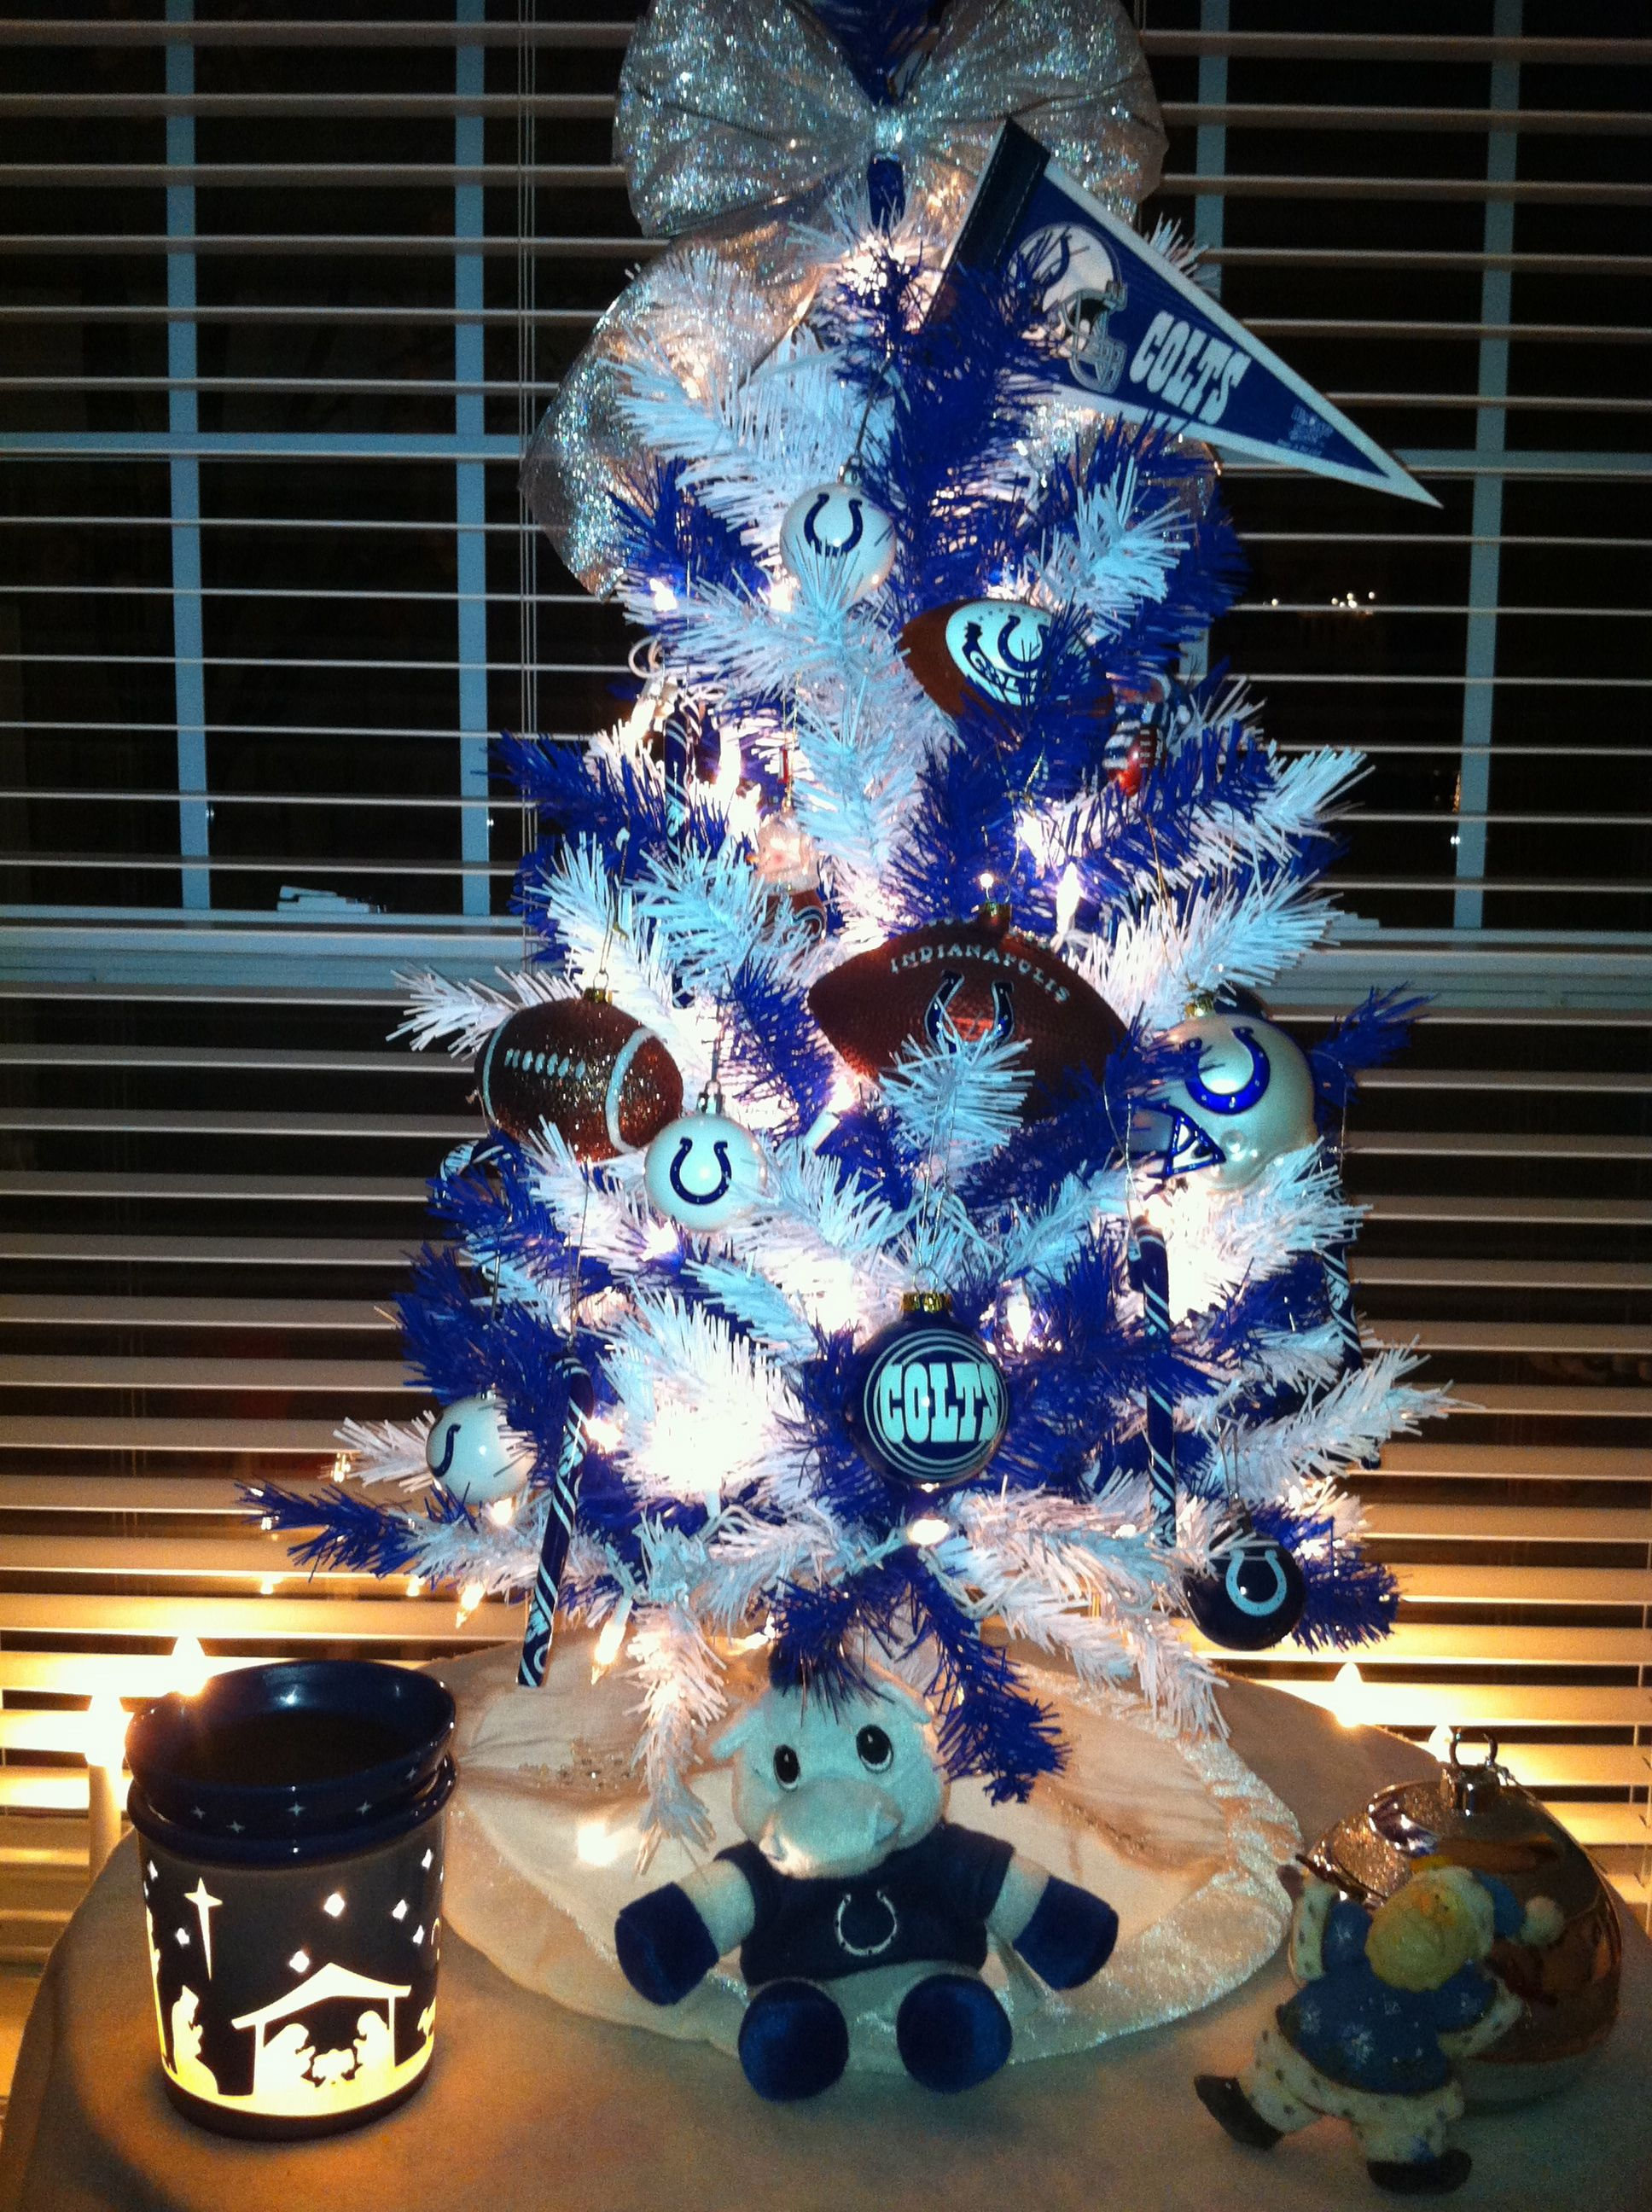 Colts themed Christmas tree...this would look good in his